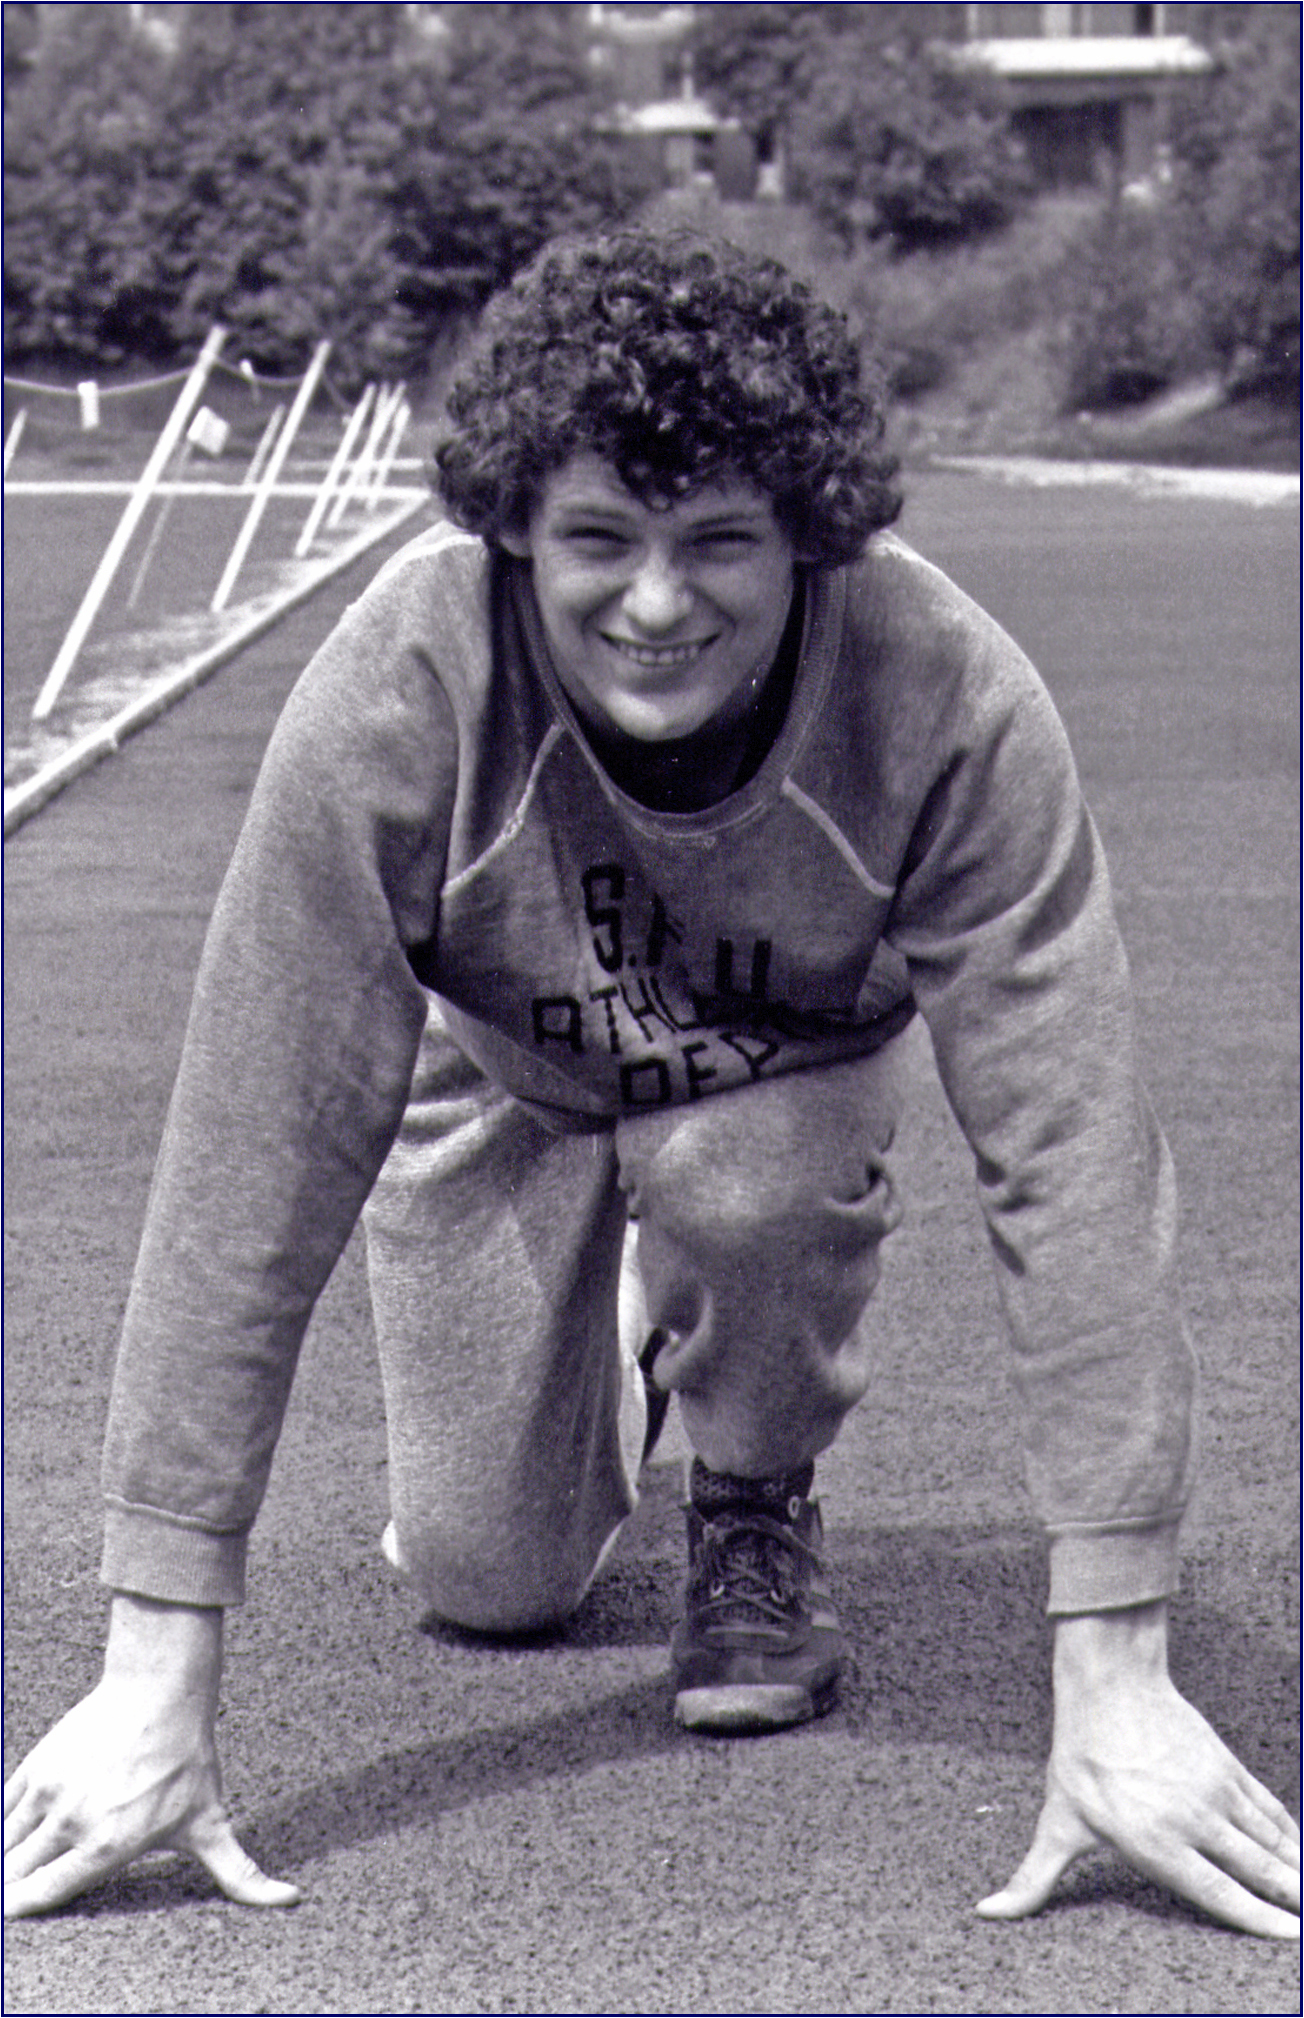 A smiling young man with curly hair wearing a tracksuit poised for a crouch start.